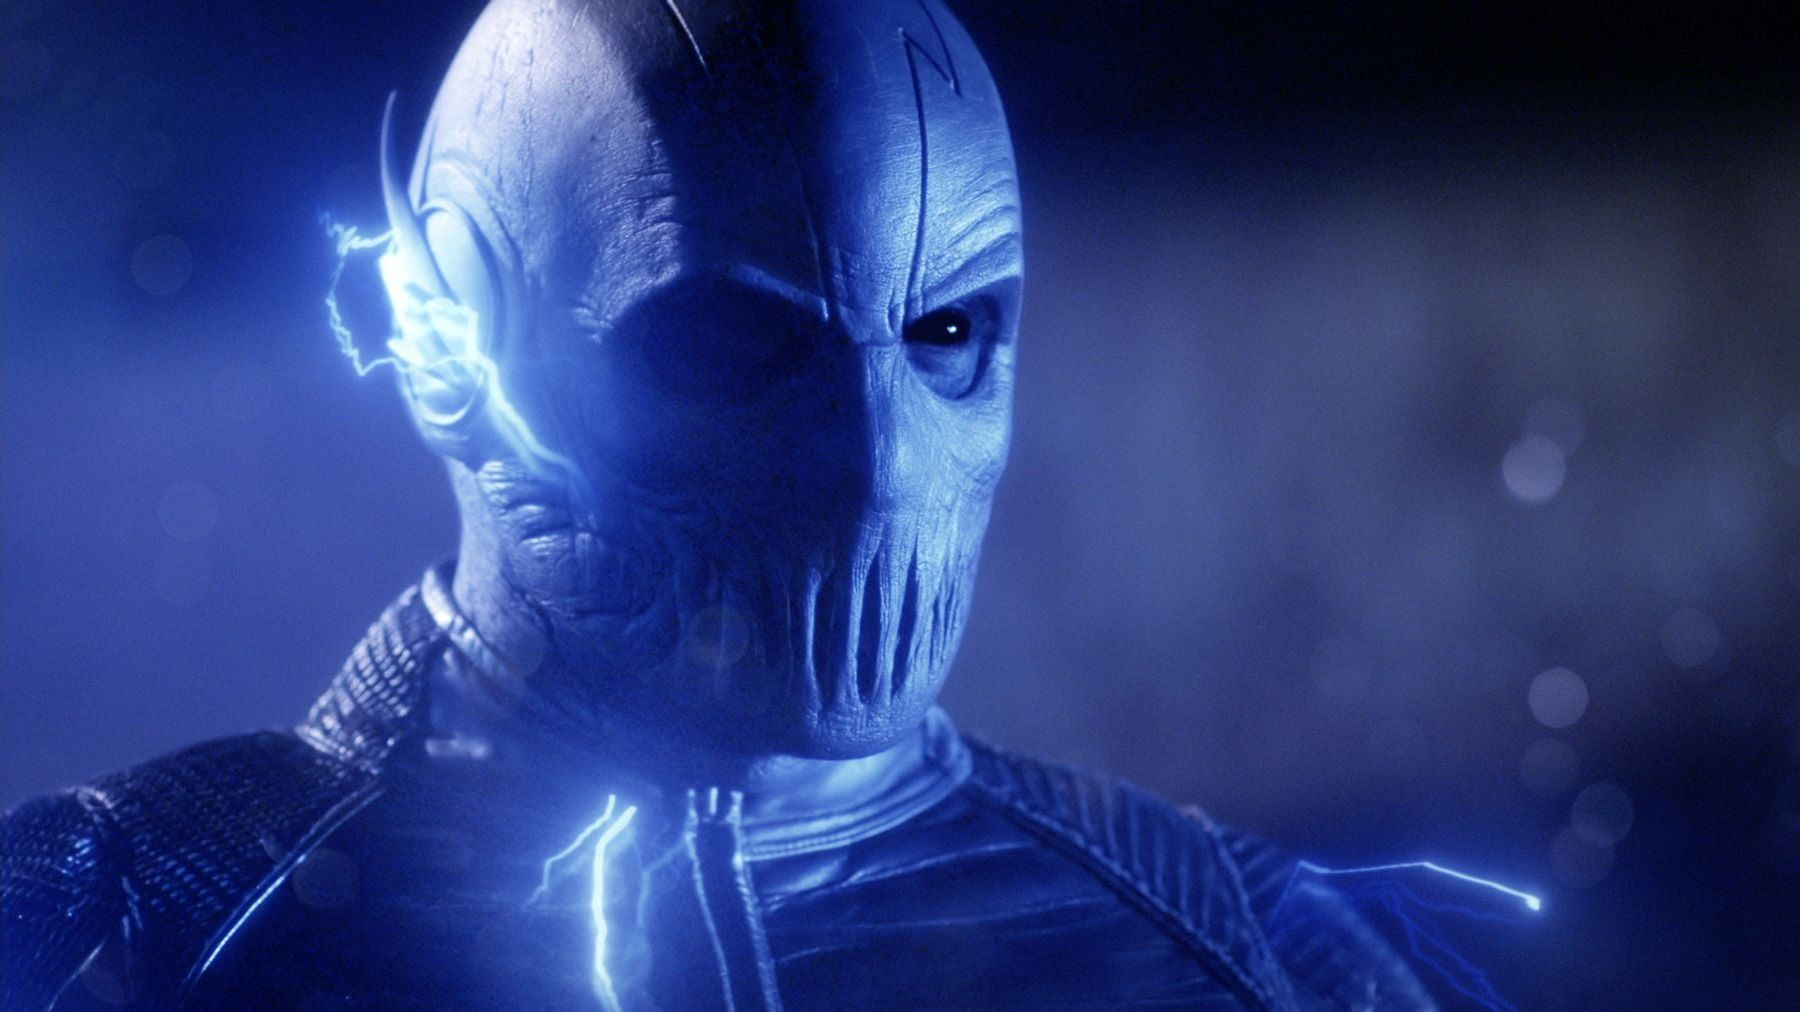 THE BEST SCENES OF ZOOM! THE FLASH The flash, Full hd